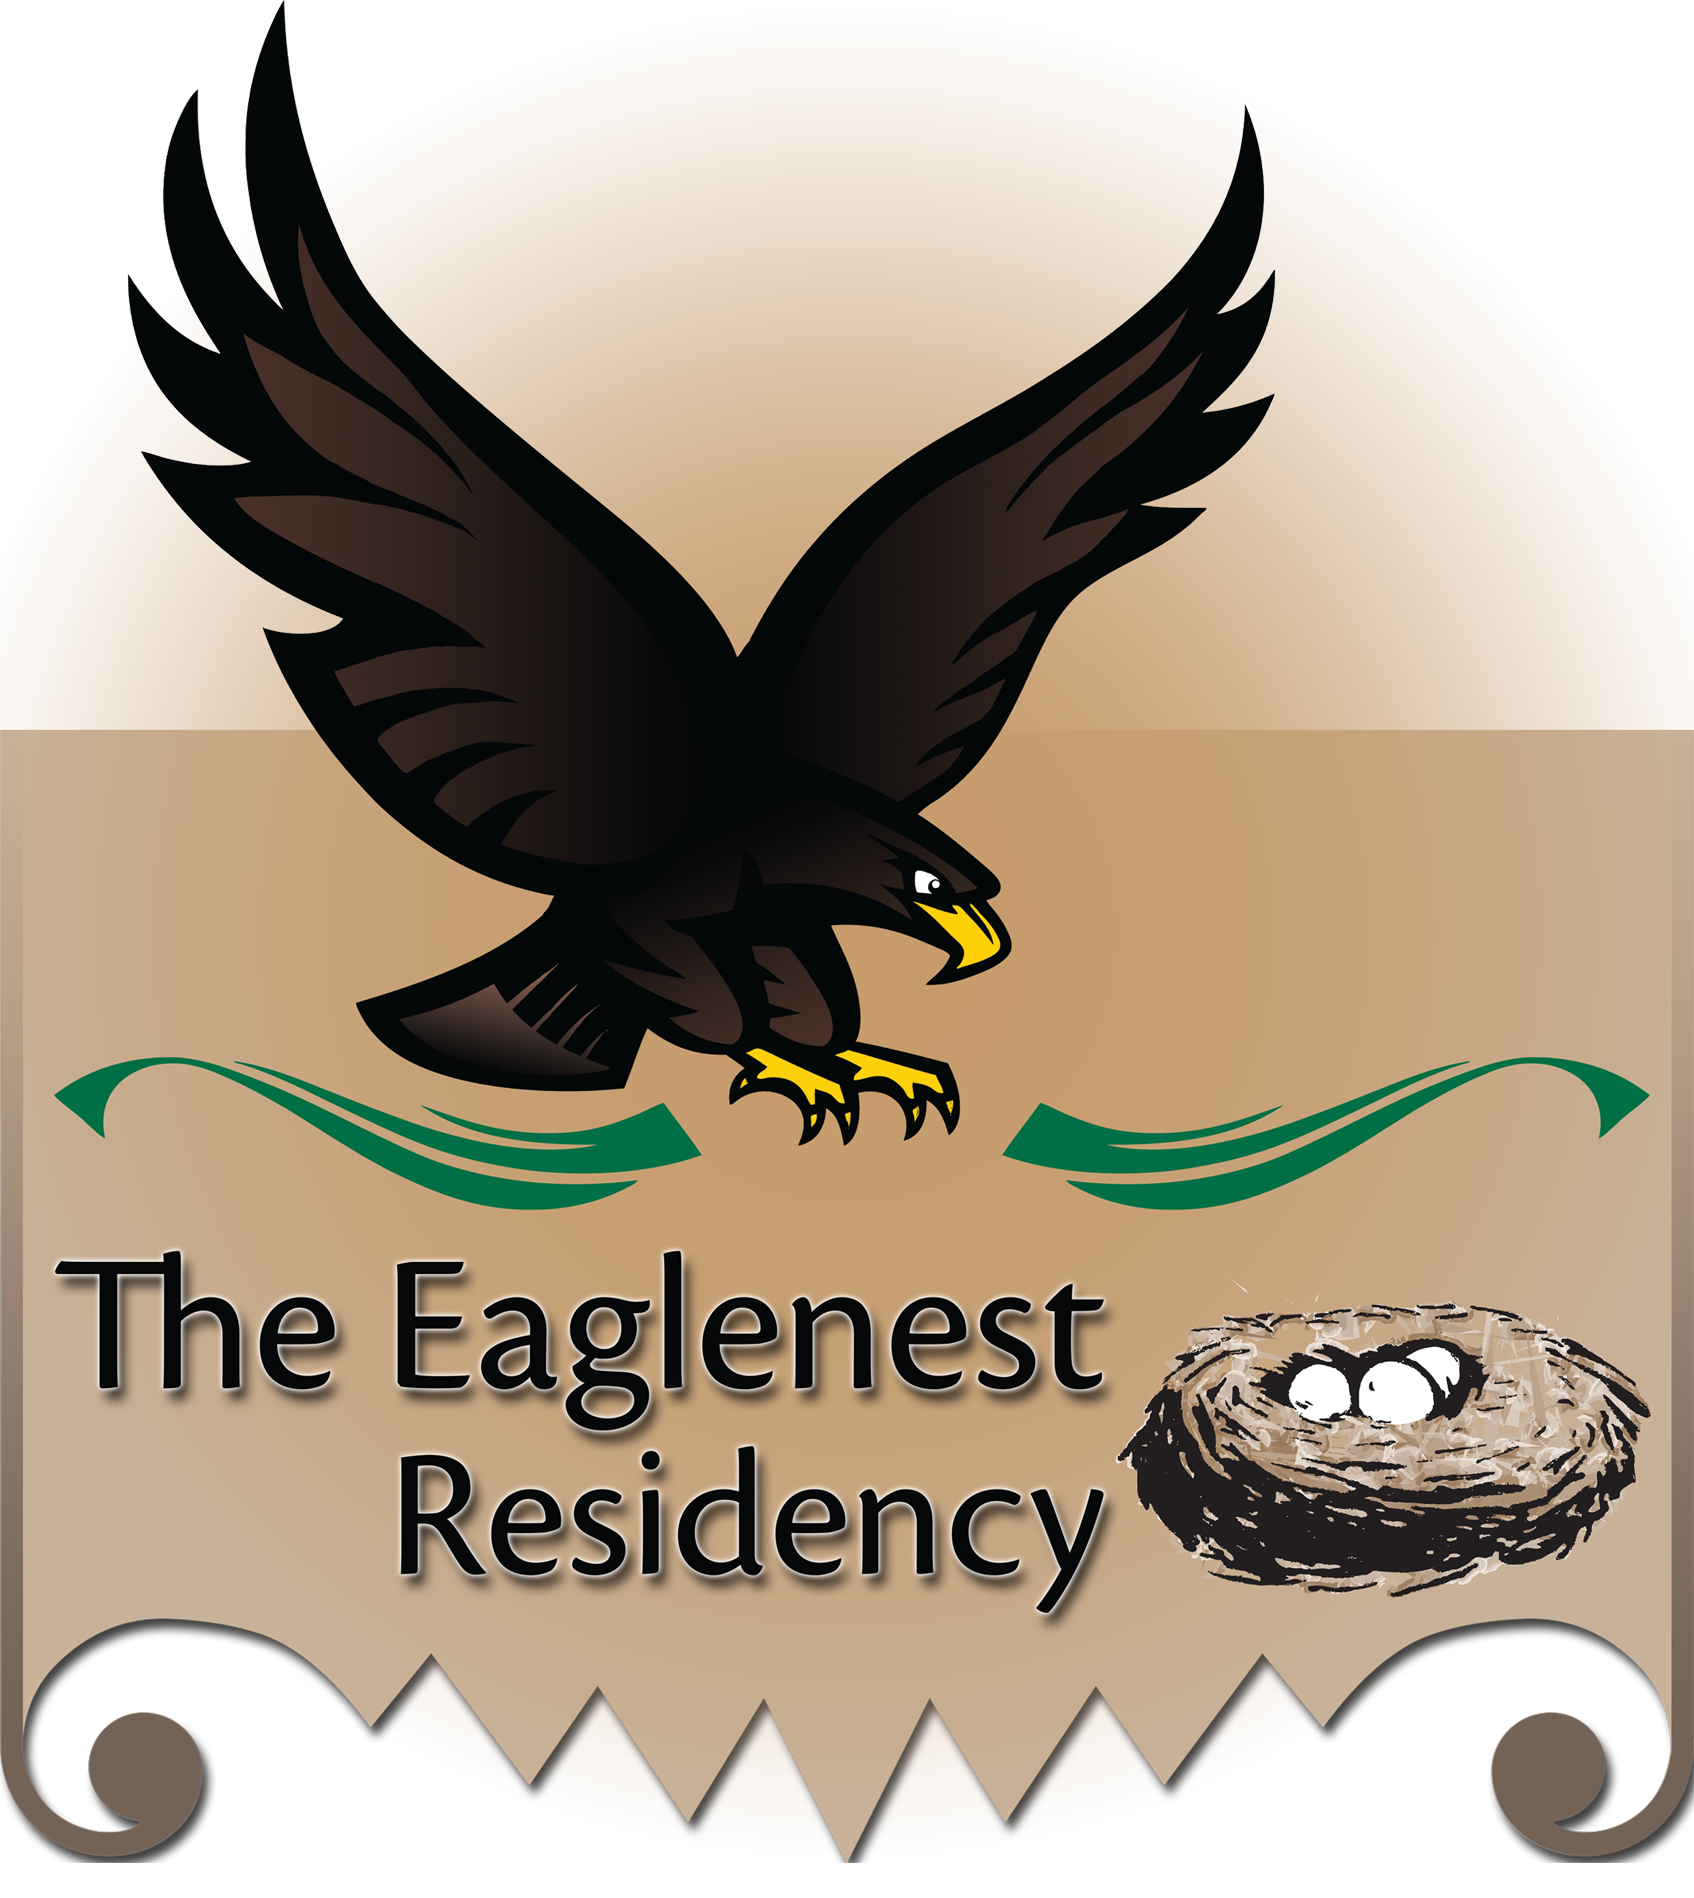 The Eaglenest Residency